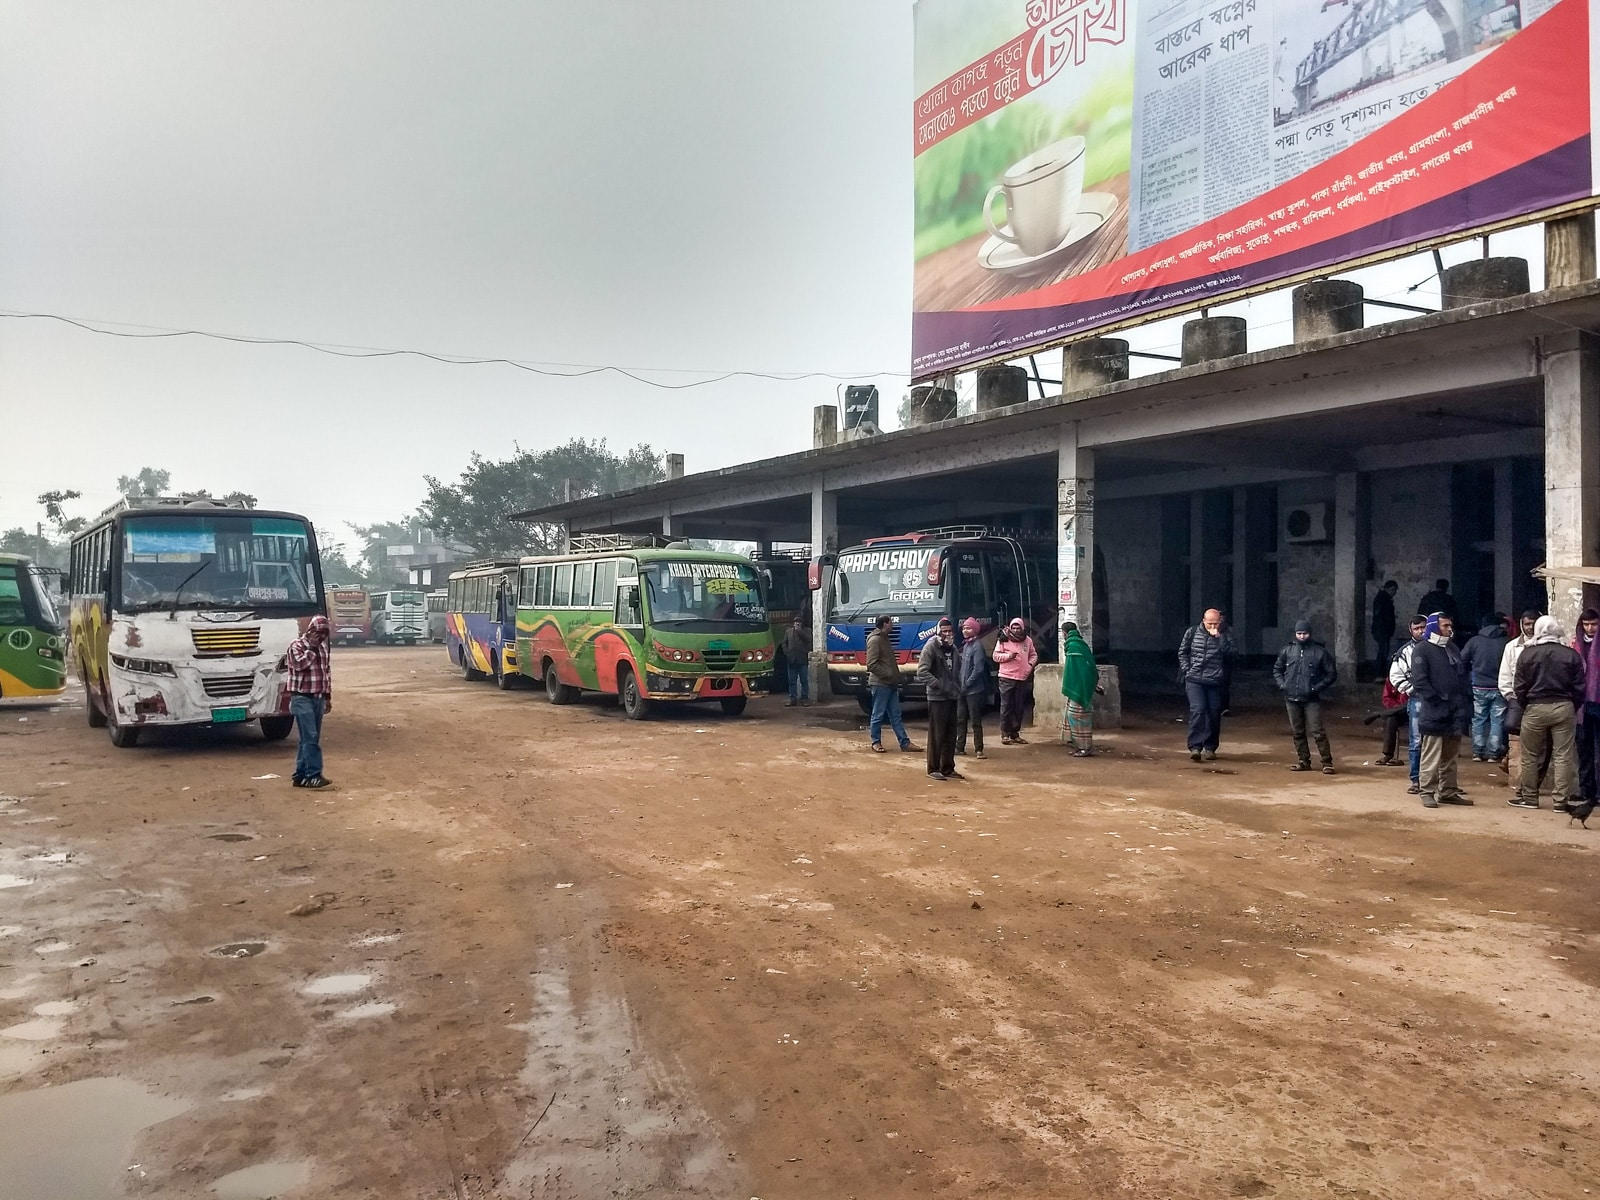 How to get from Bogra to Paharpur by public transport - Joypurhat bus stand in Bangladesh - Lost With Purpose travel blog